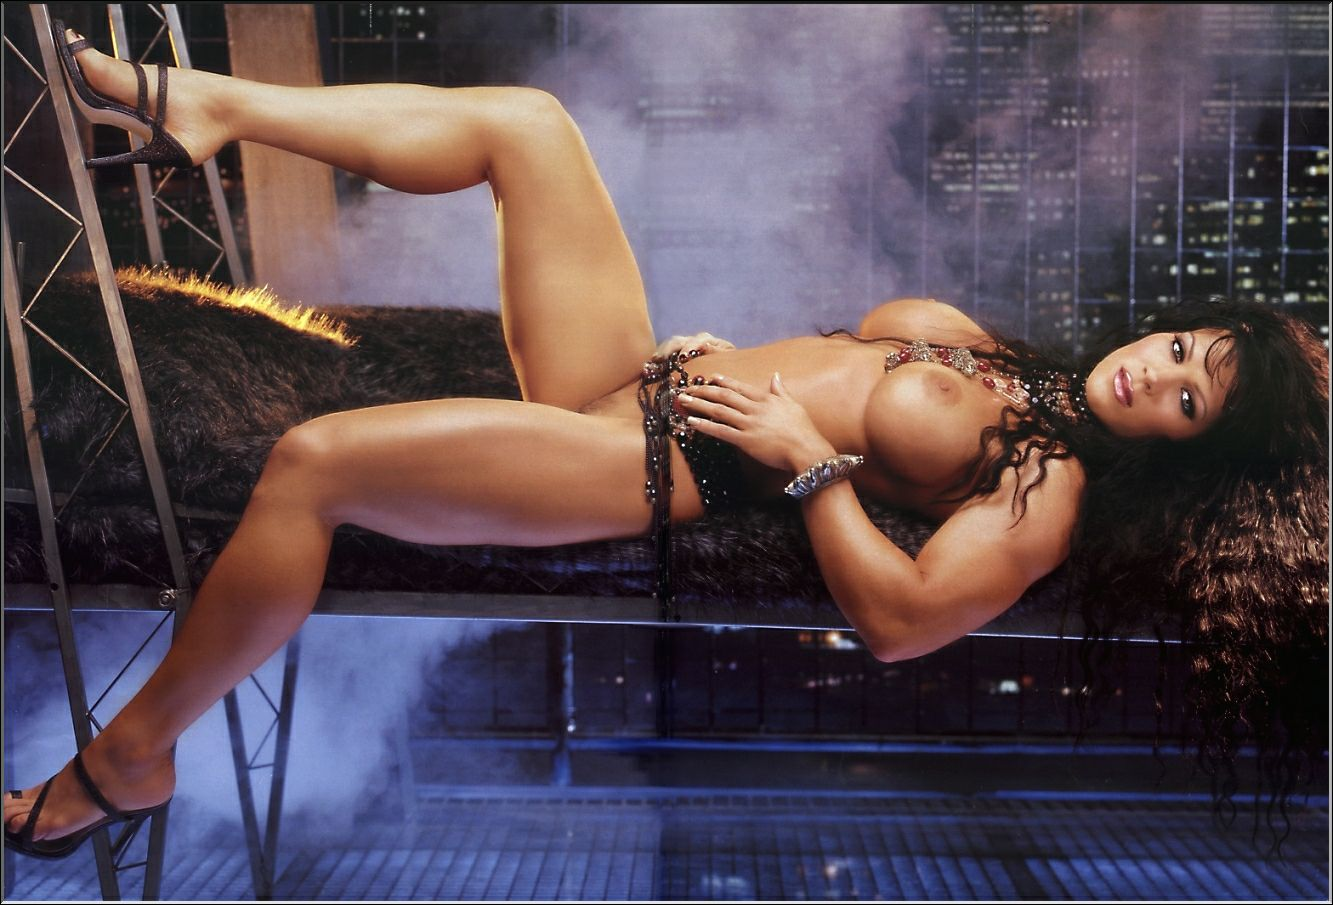 wwe jacqueline in the nude